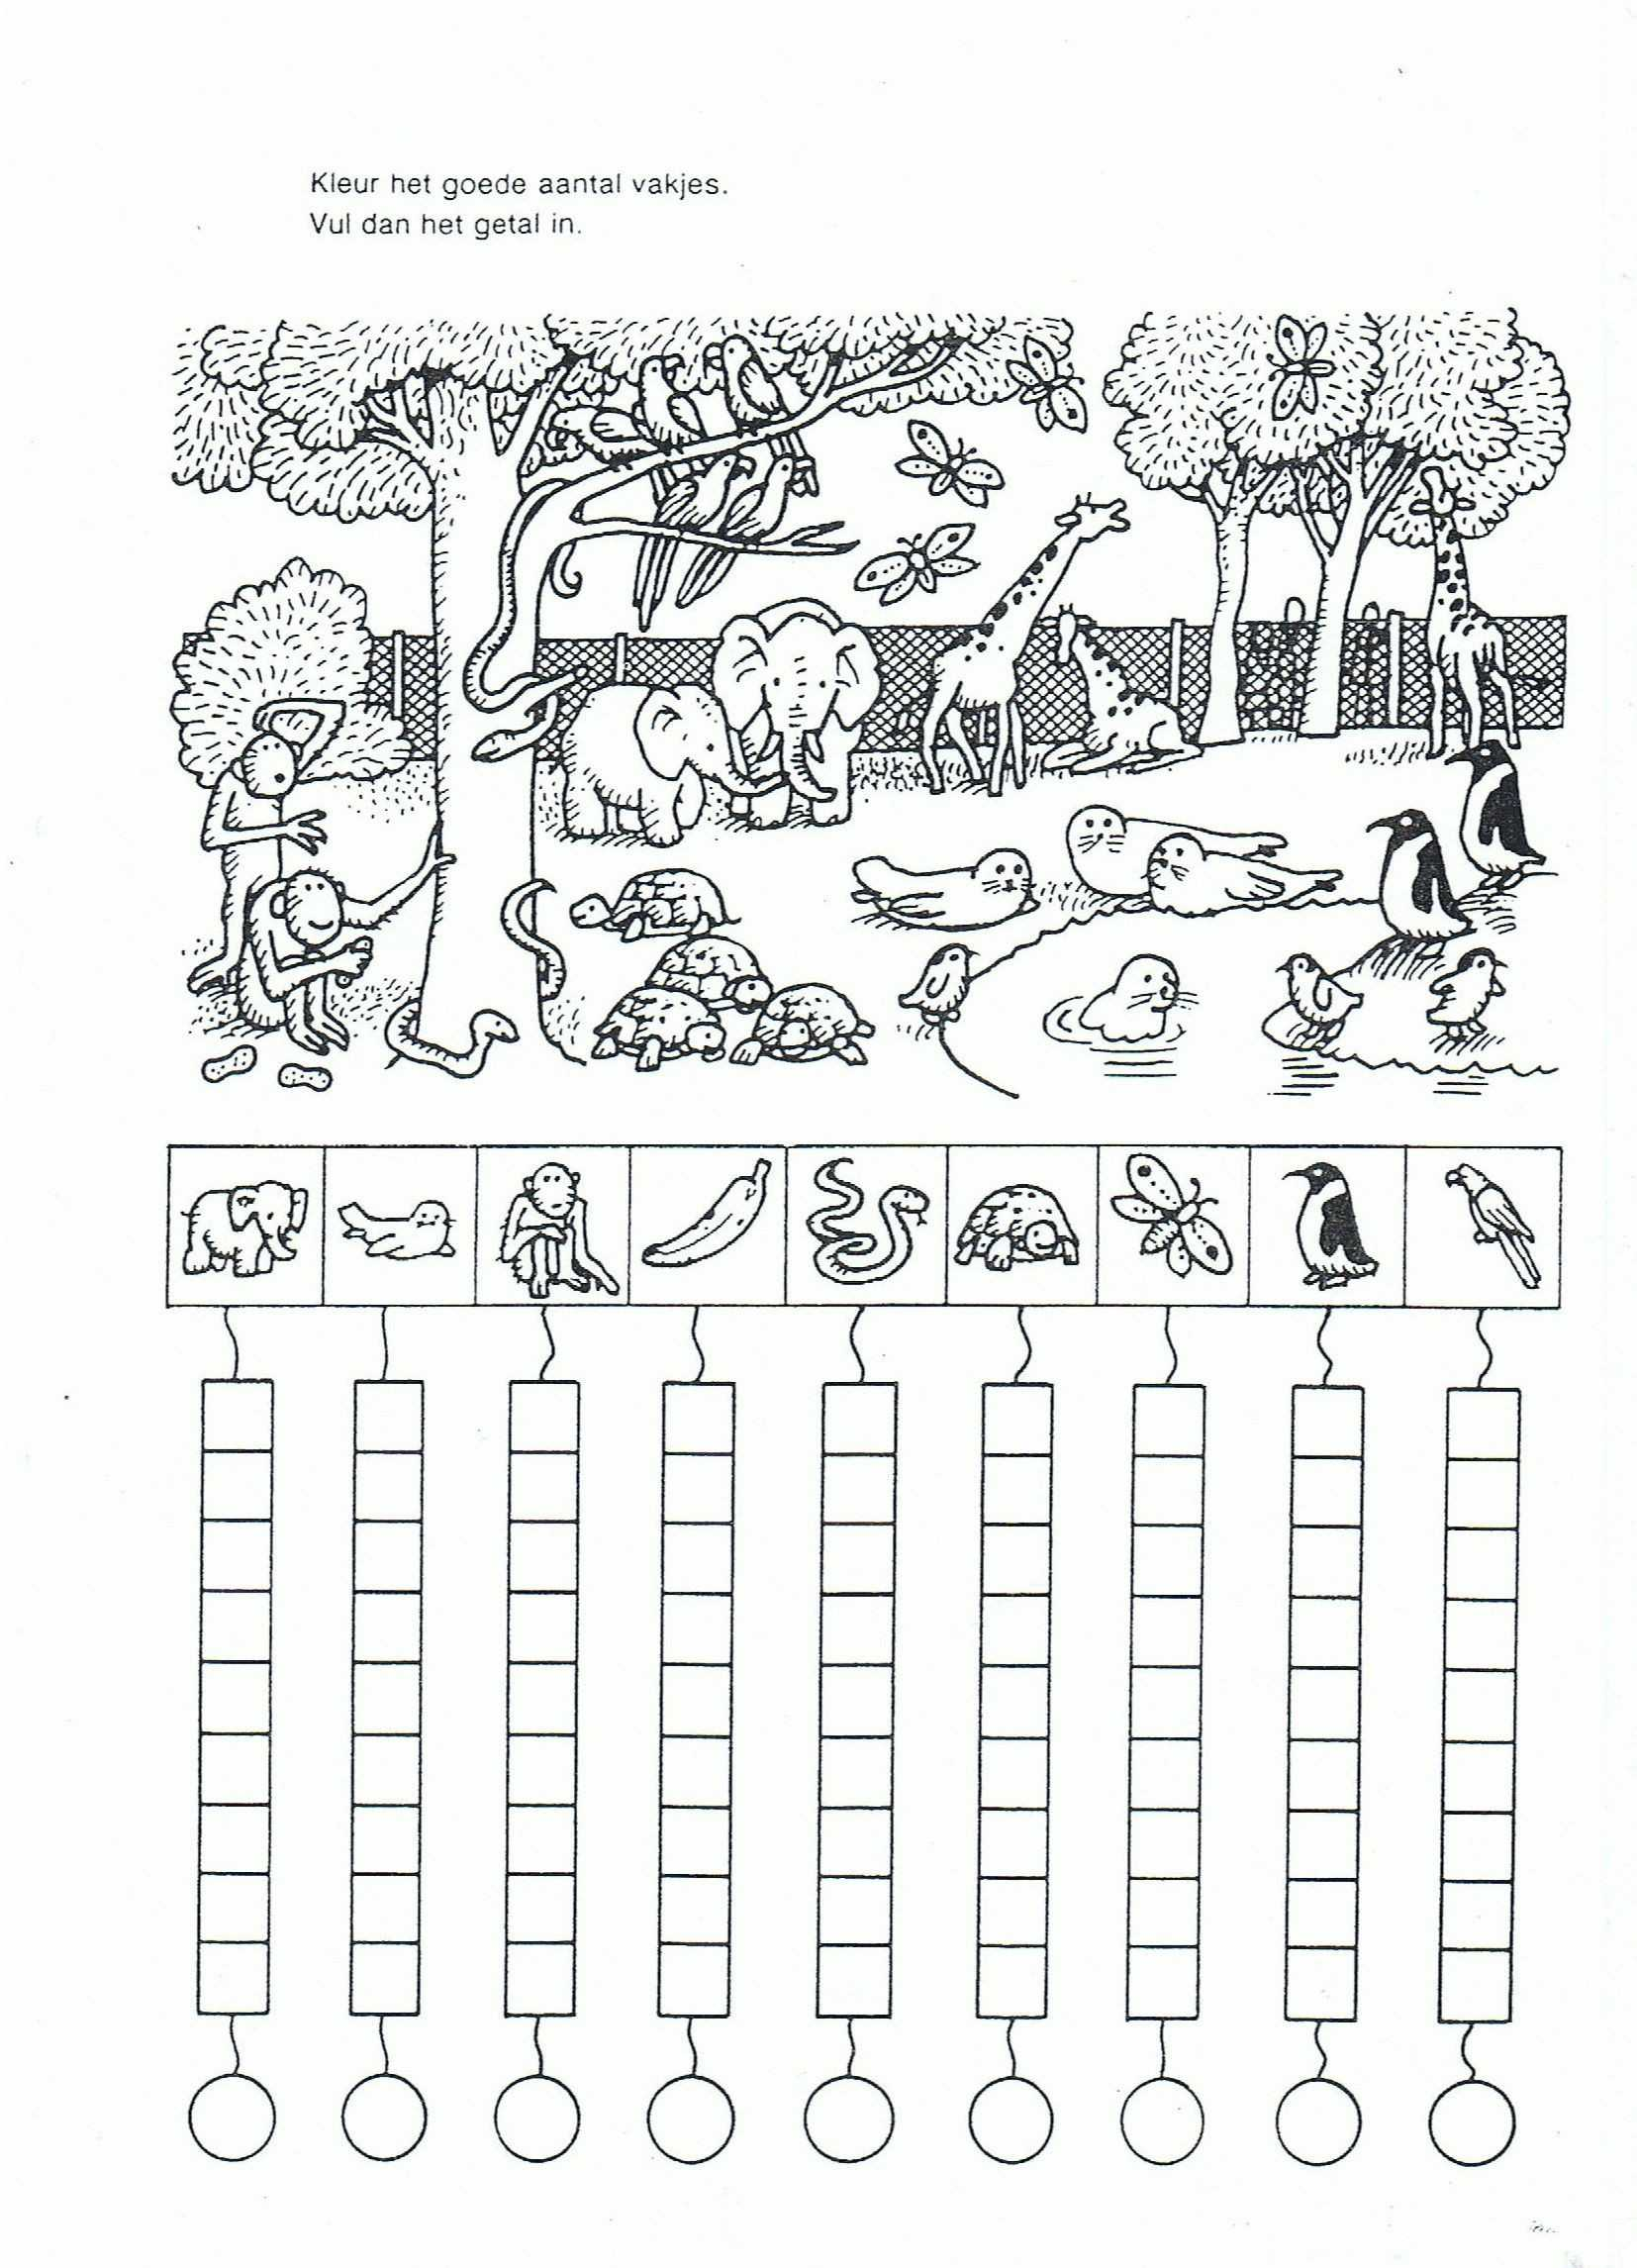 Custom Name Tracing Worksheets as Well as 50 New Pics Tracing Sheets for Preschool